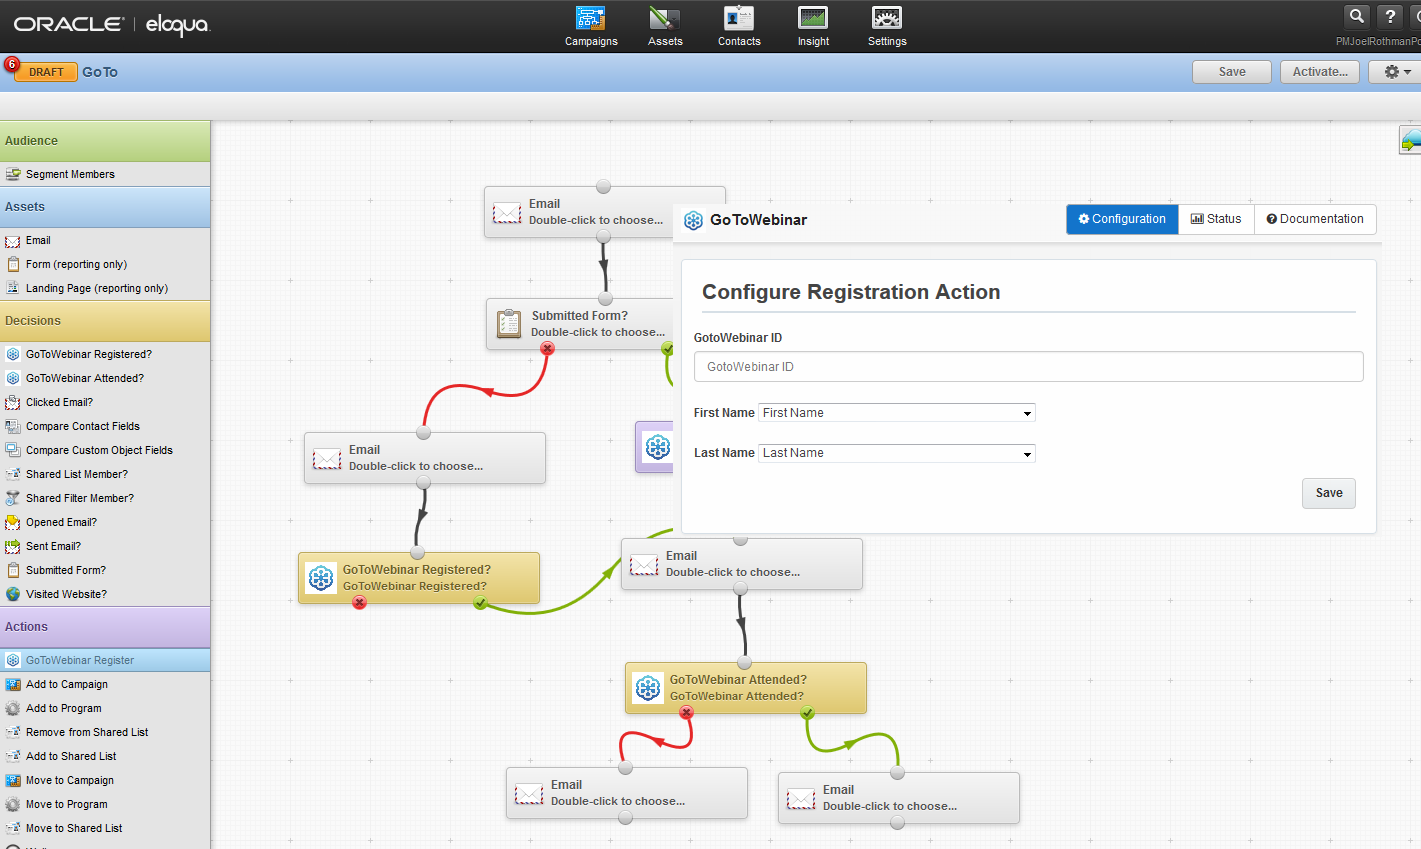 G2W US IM Oracle | Eloqua and GoToWebinar Screenshot